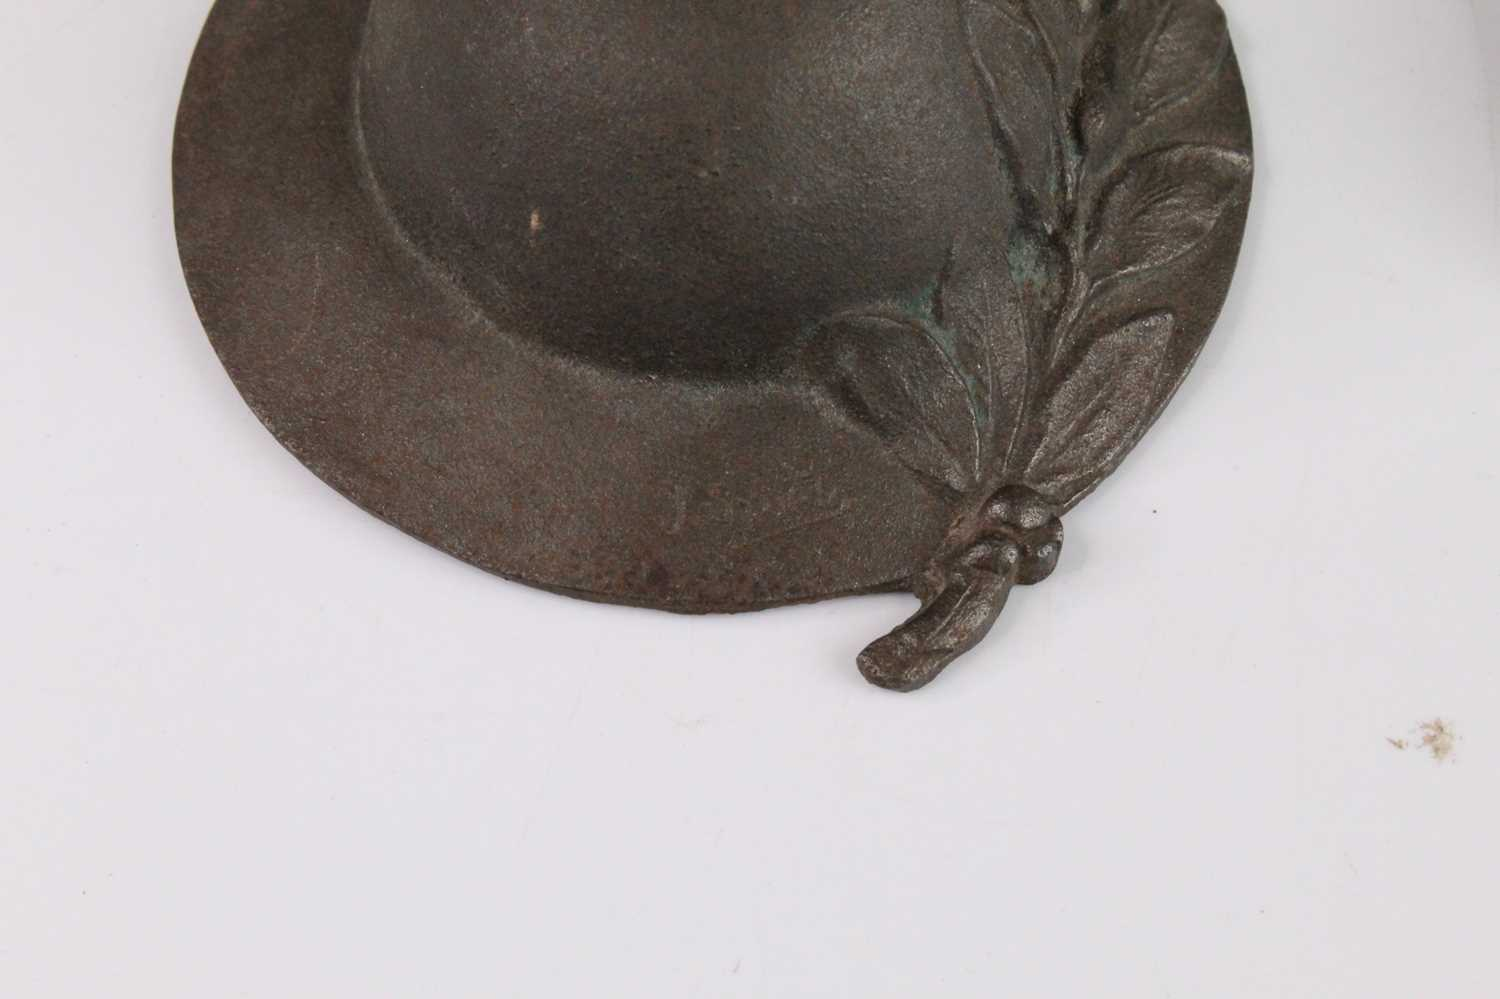 A miniature Brodie helmet embossed with laurel leaves, marked Ypres and signed J. Smit, dia.9cm, - Image 2 of 3